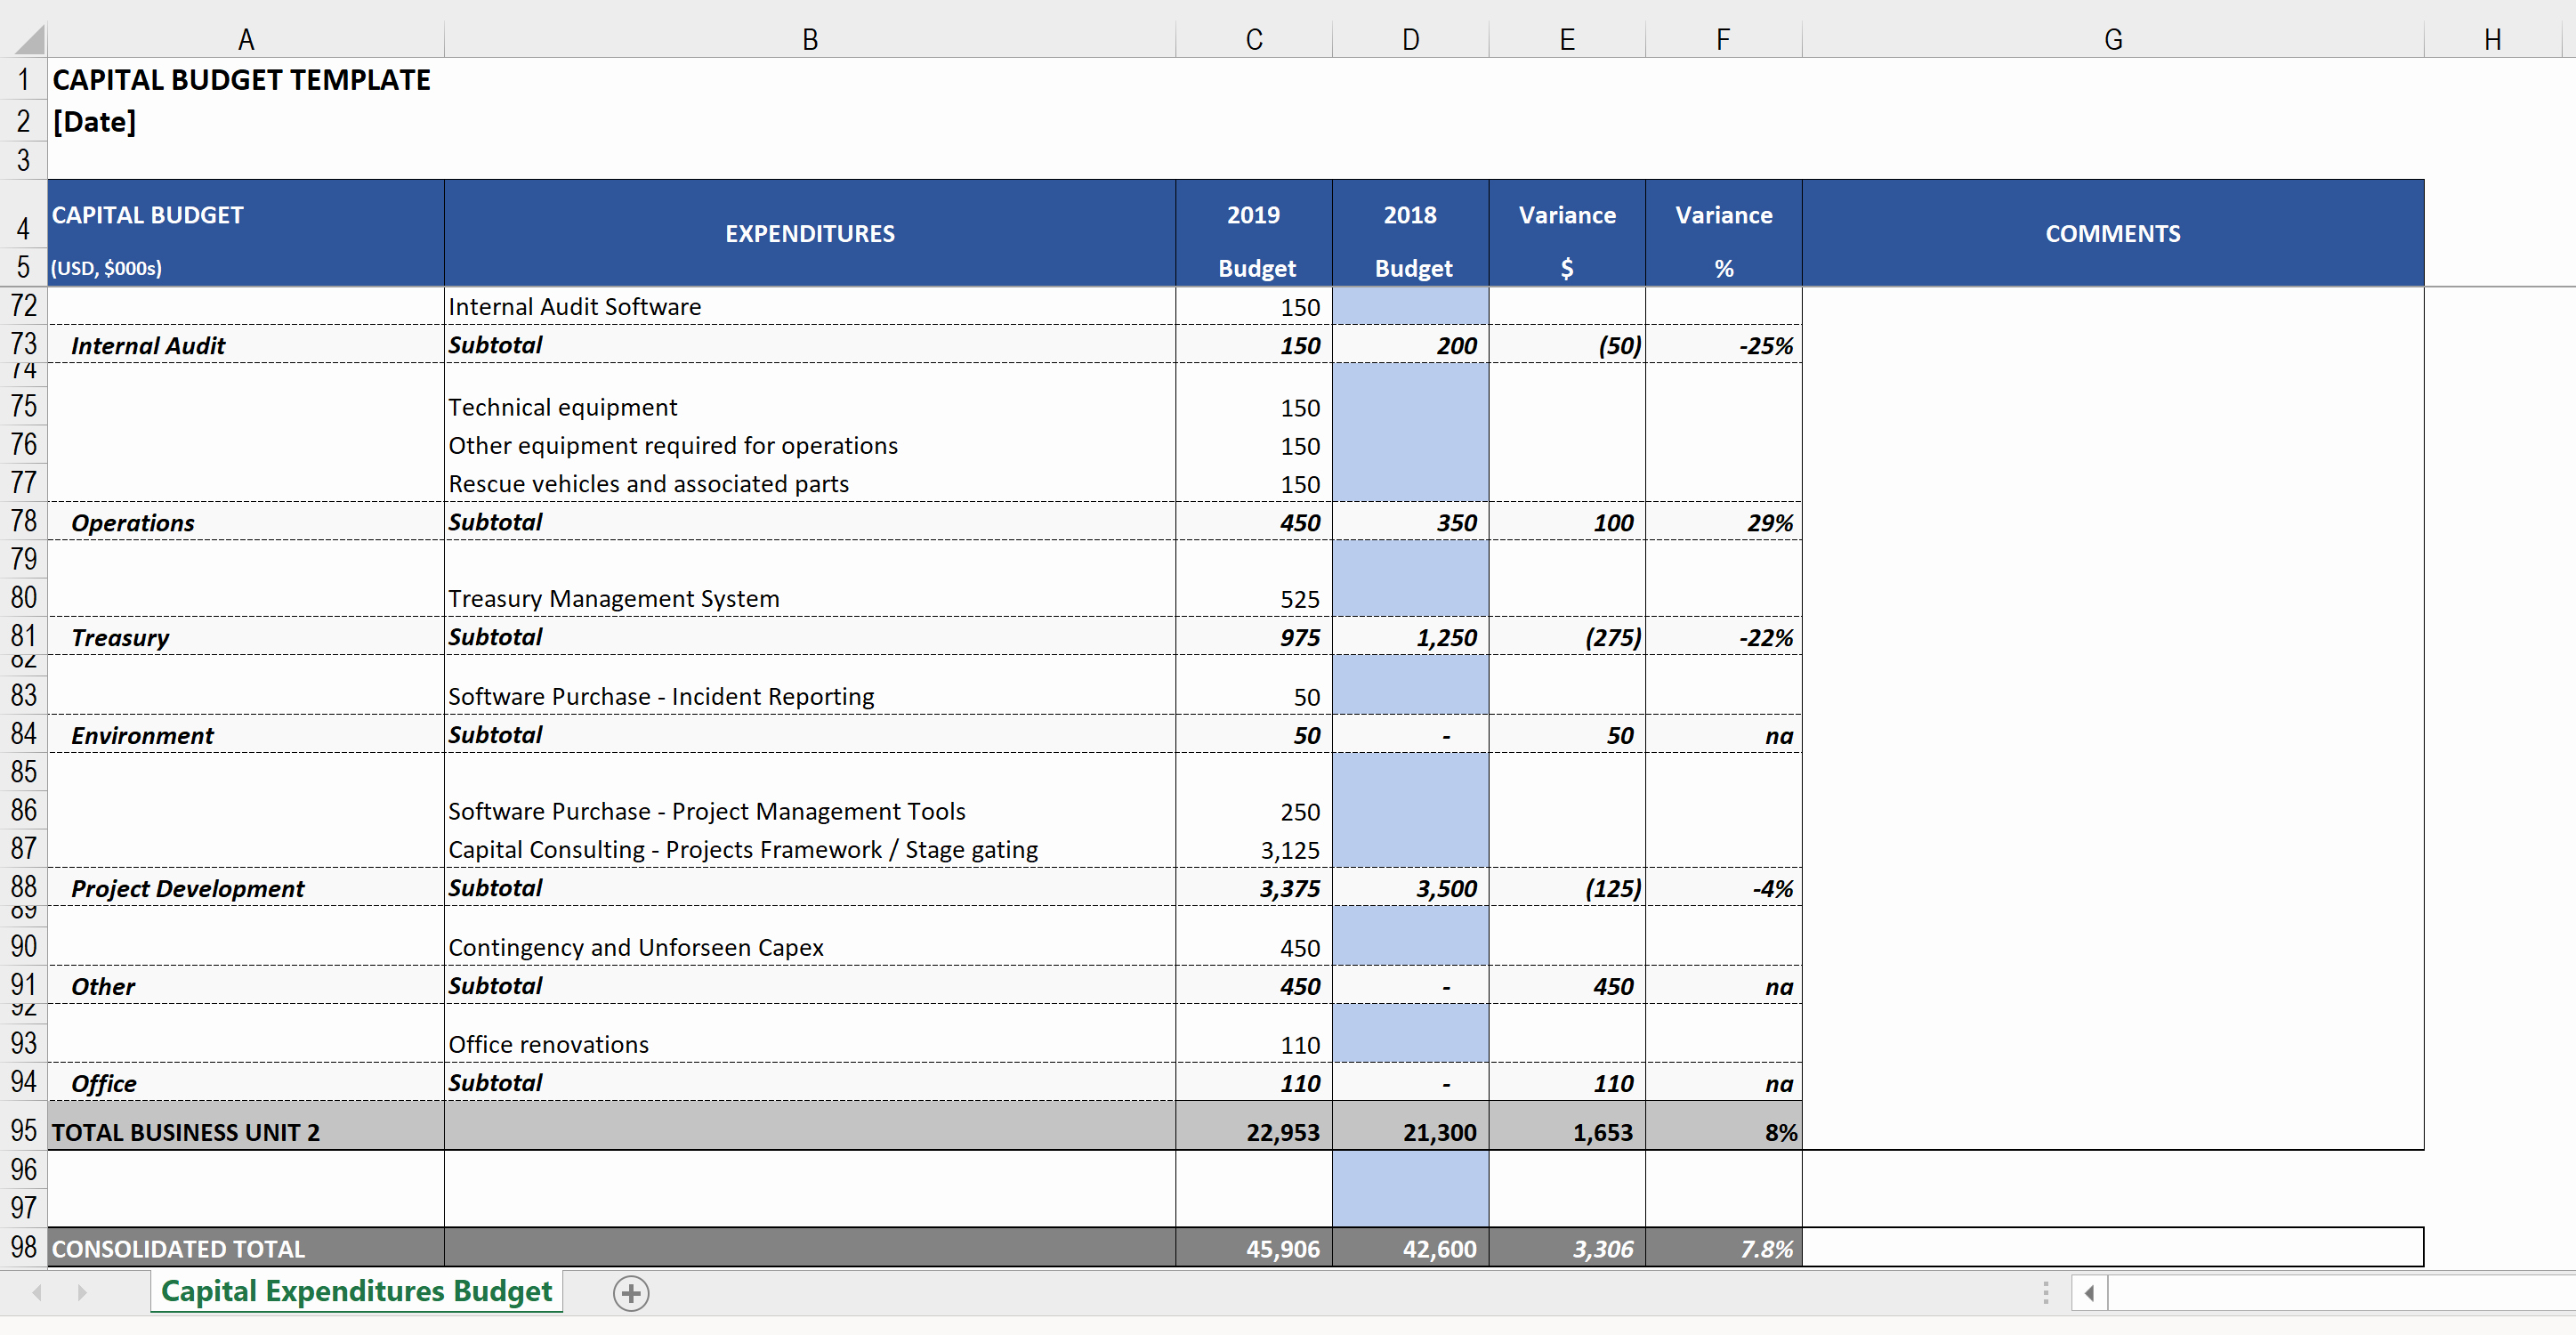 Capital Expenditure Budget Example Lovely Capital Expenditures Bud Template Free Excel Download